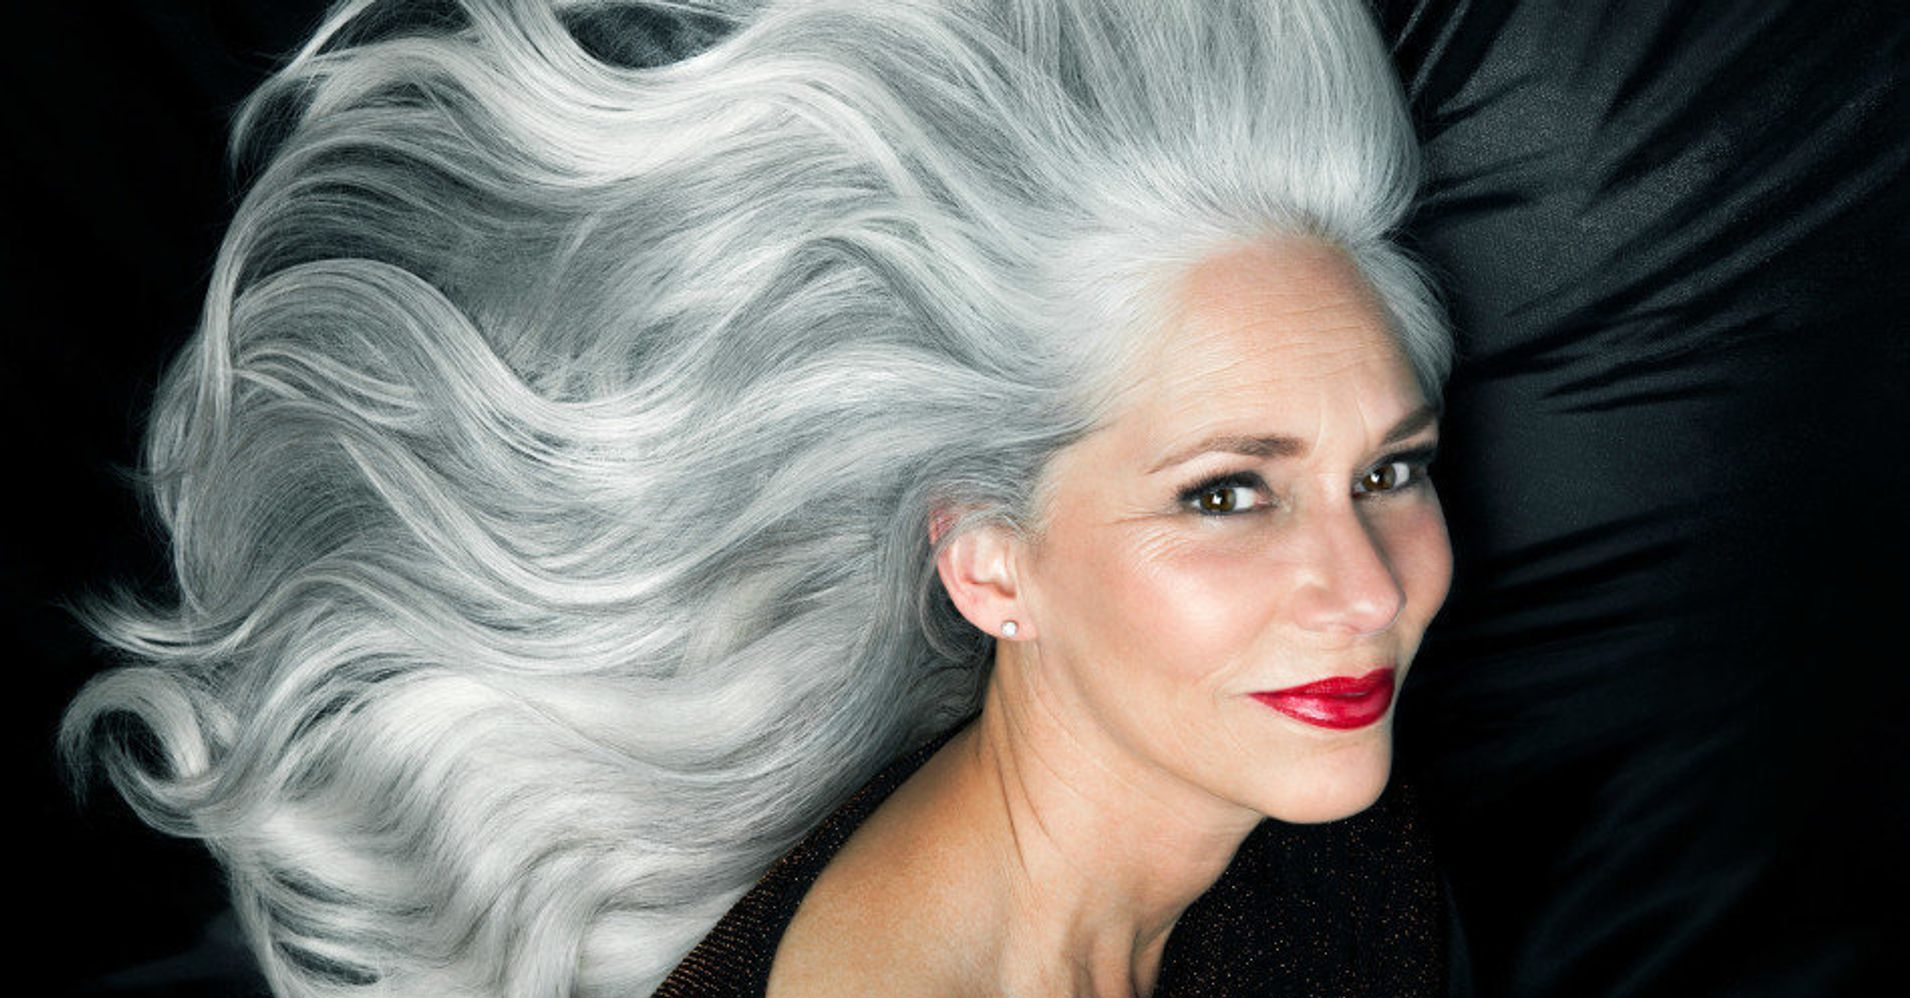 10 Photos That Show How Beautiful Gray Hair Really Is Huffpost